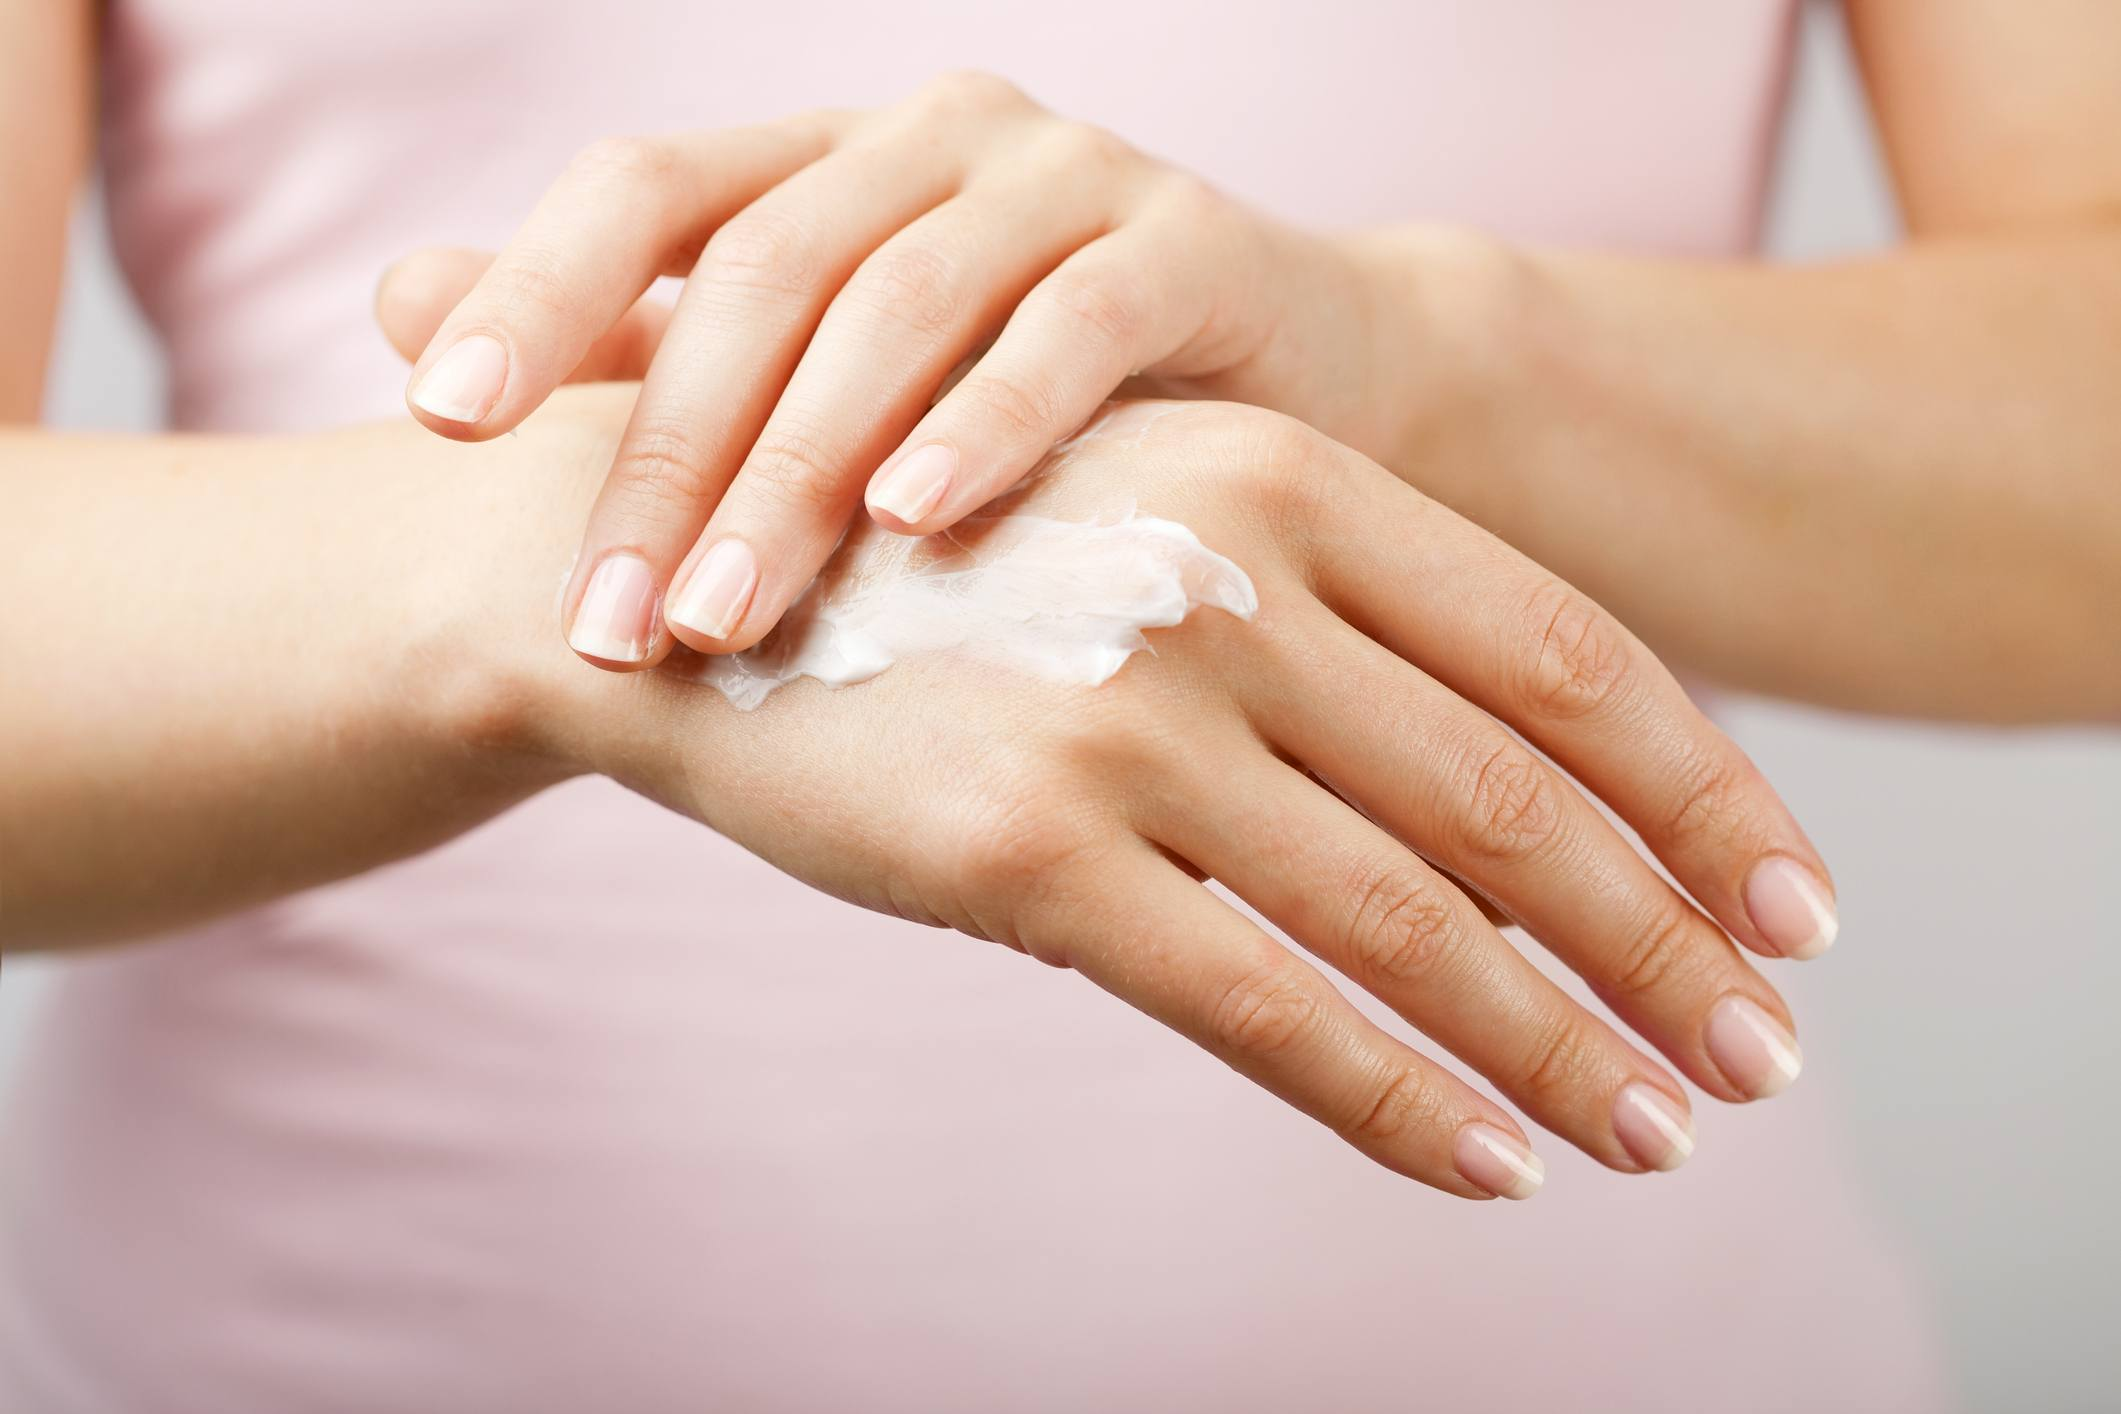 Applying lotion on hands